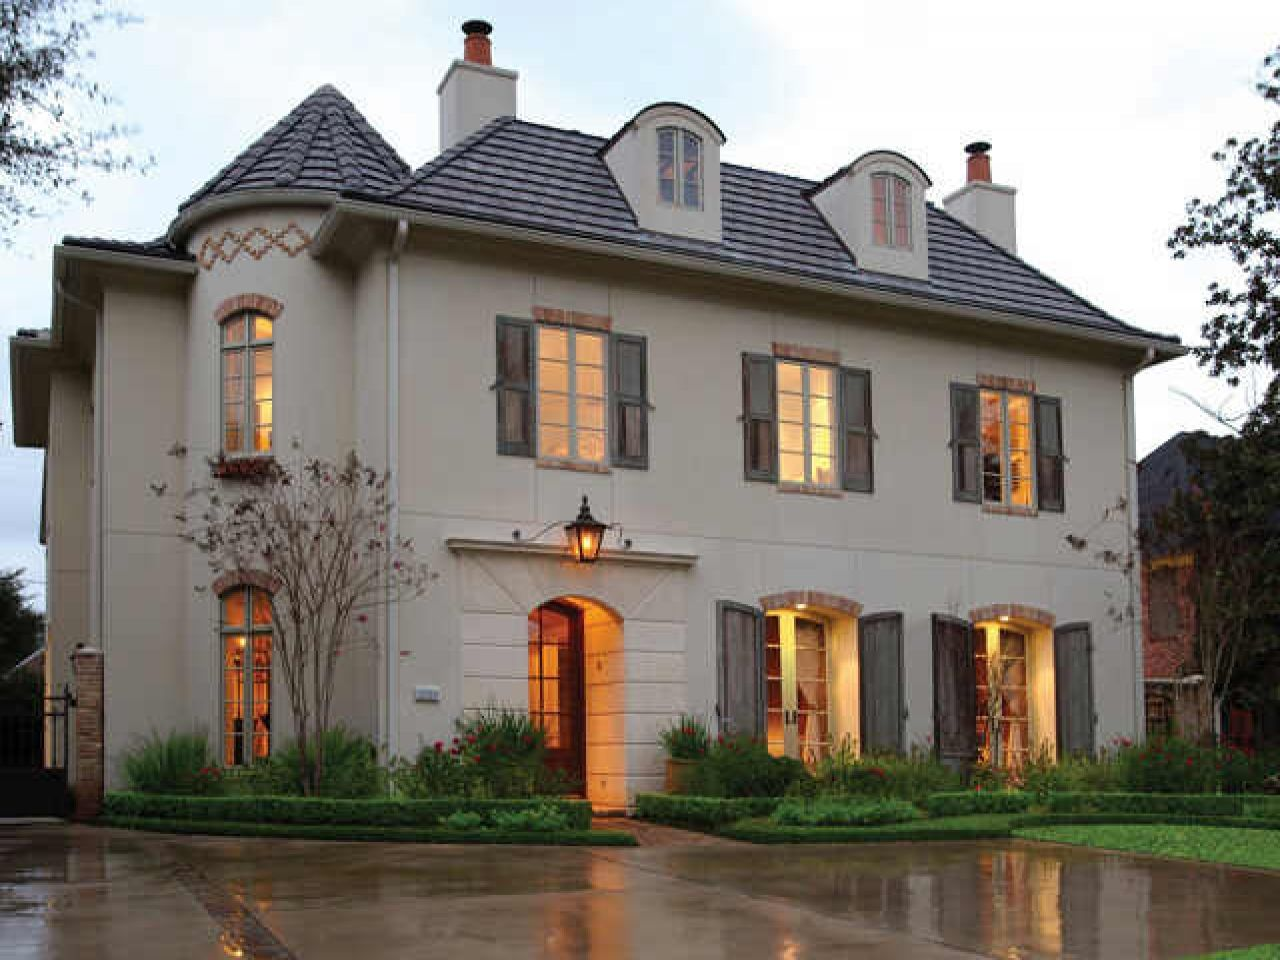 Any French House Worth Their Sel Would Have Dormers Against A Beautiful Slate Roof Descripti French Style Homes Country Home Exteriors French Country Exterior